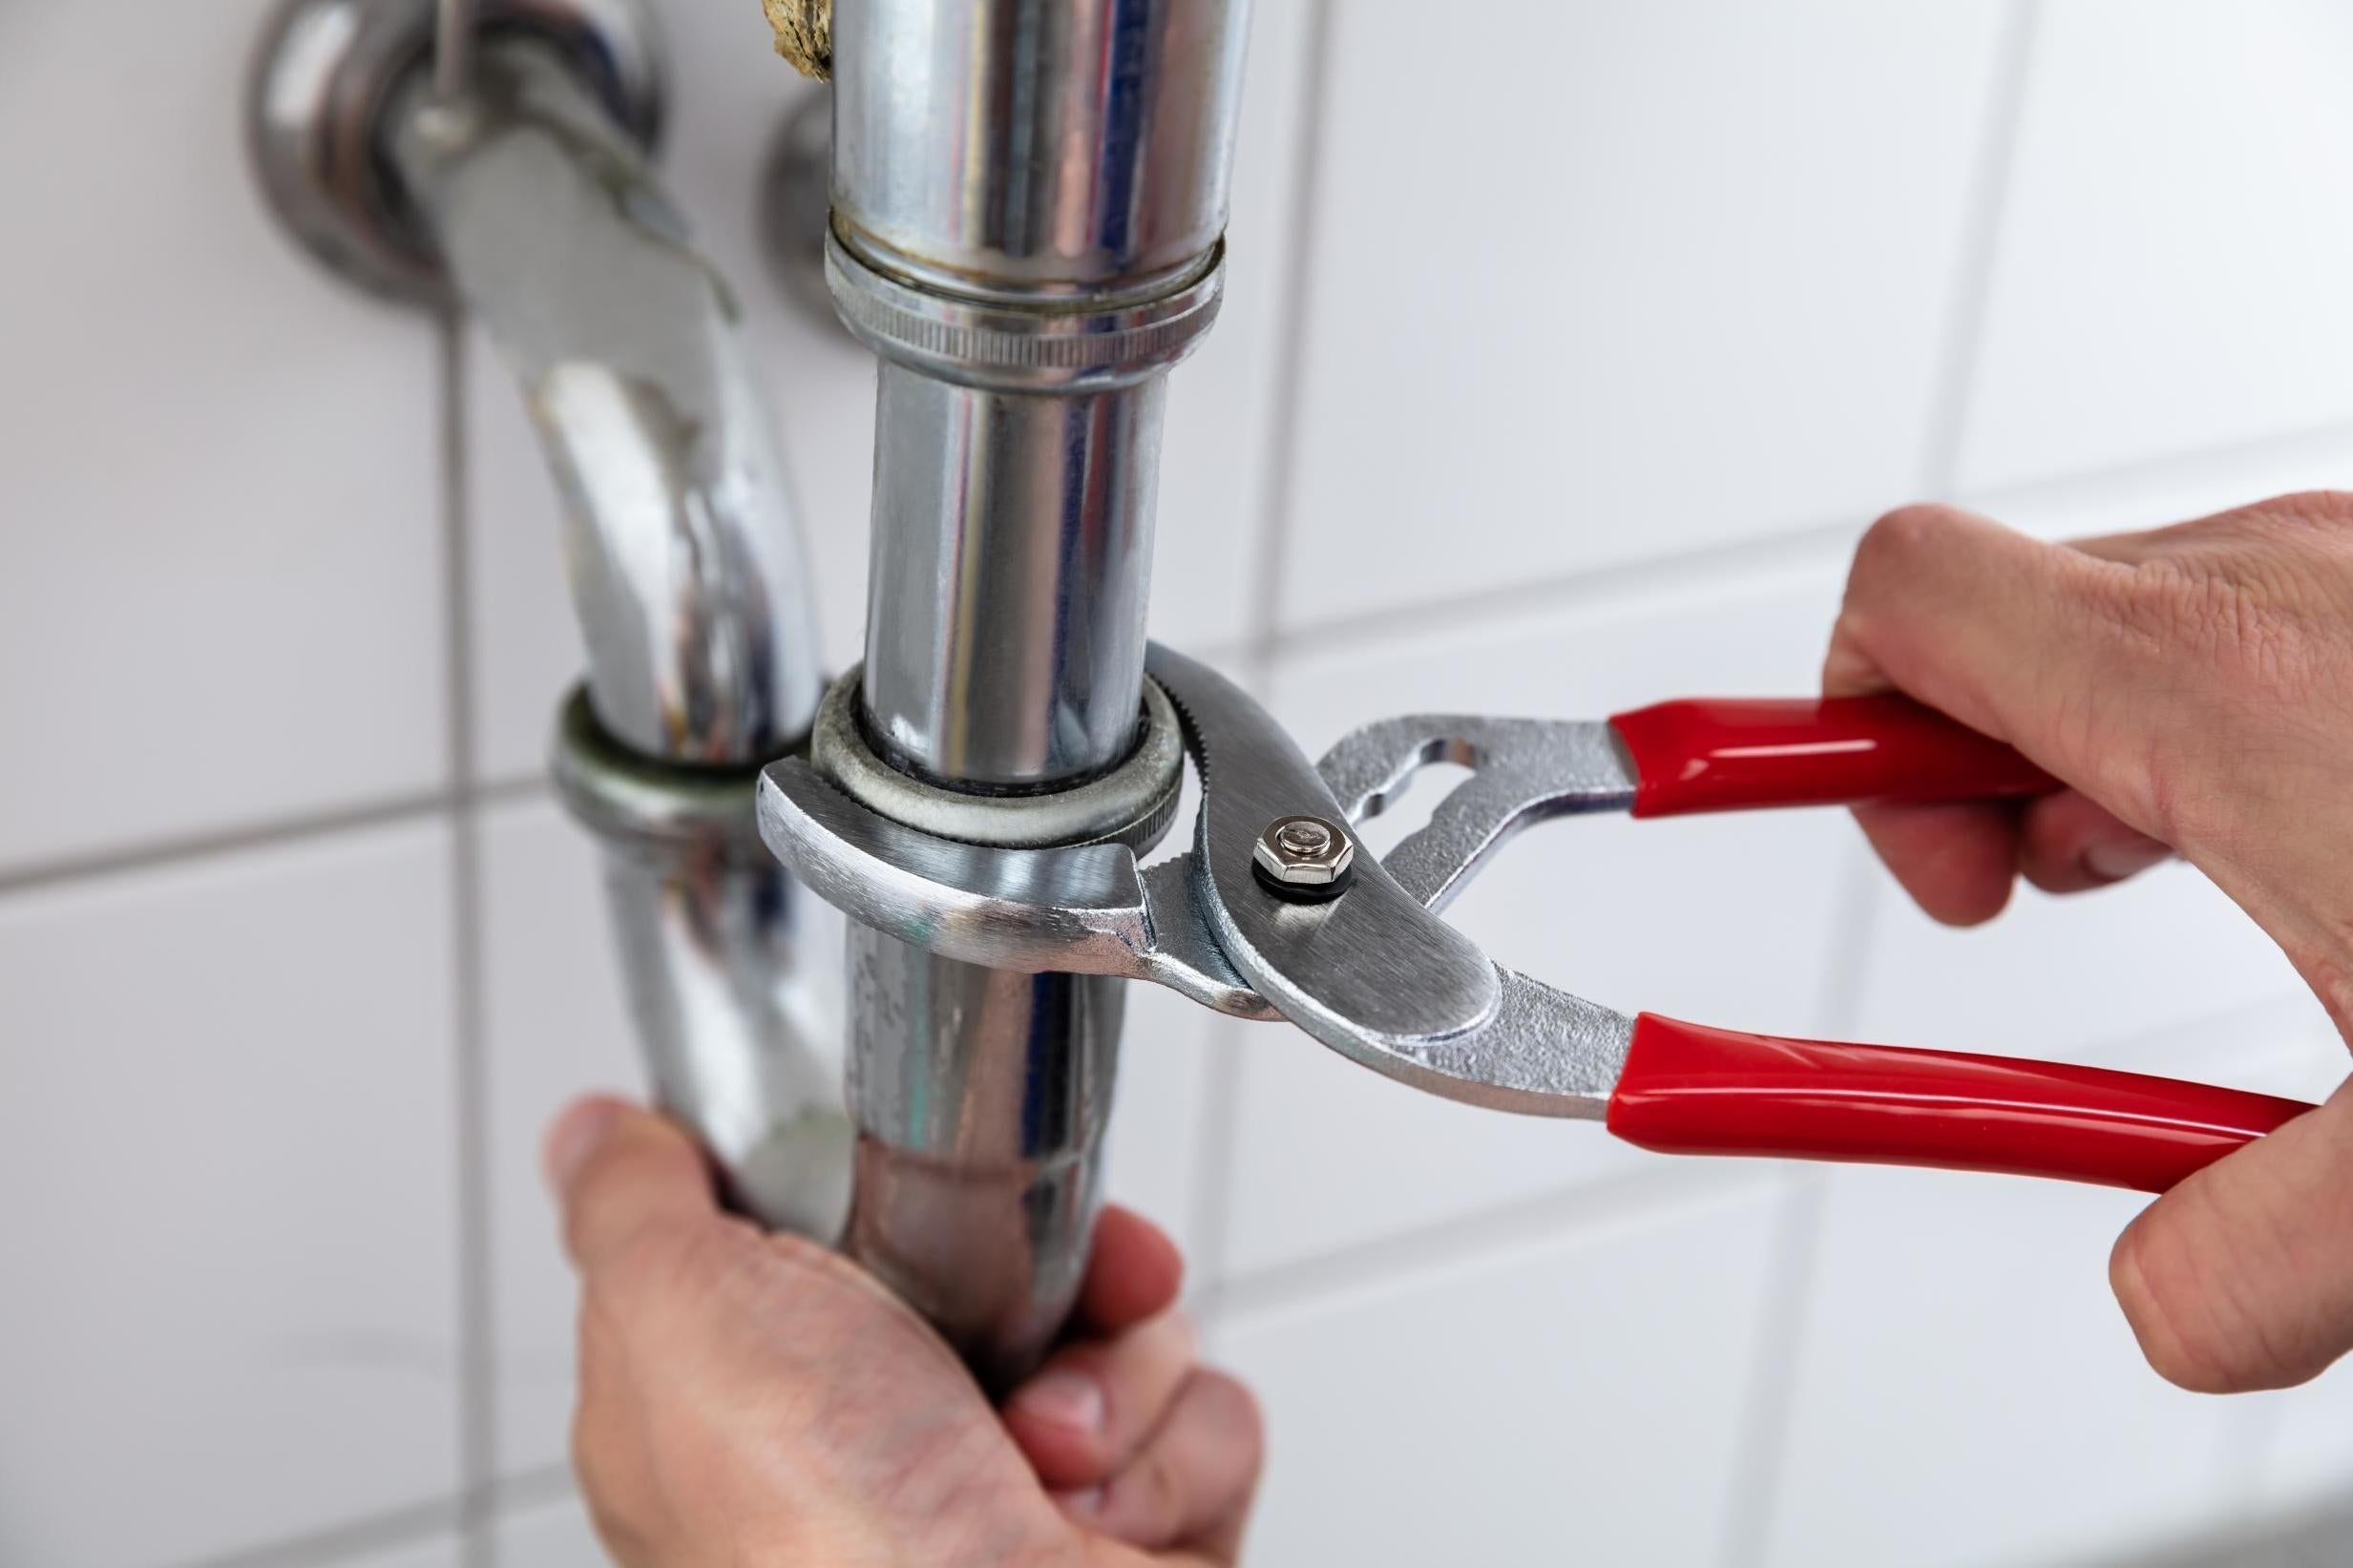 Plumber praised for invoicing 91-year-old a bill for £0